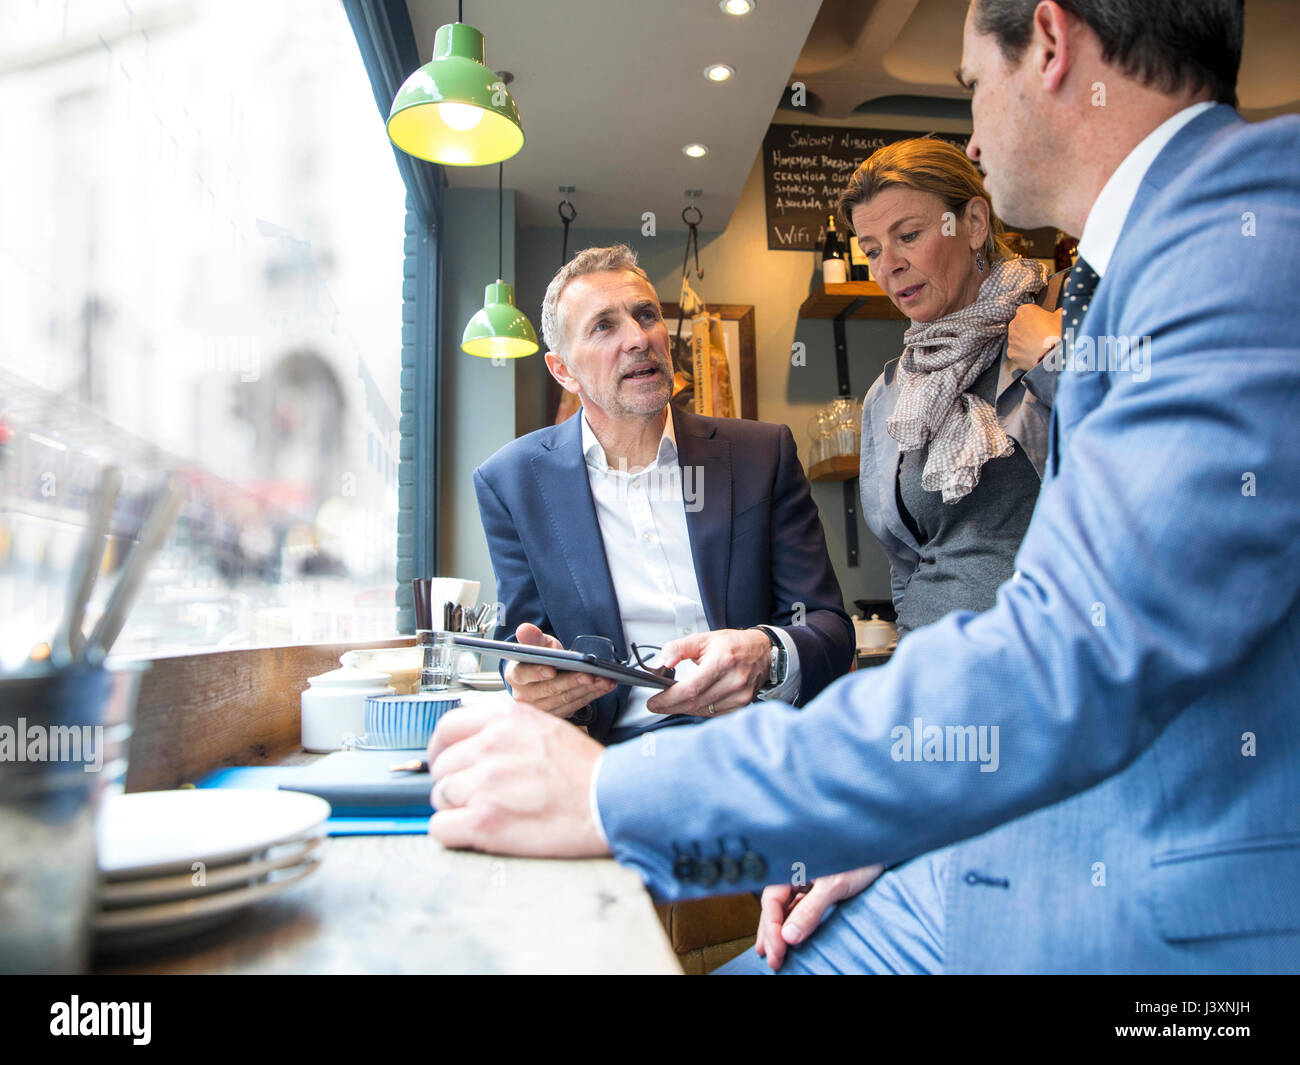 Businessmen and woman having discussion in restaurant window seat - Stock Image